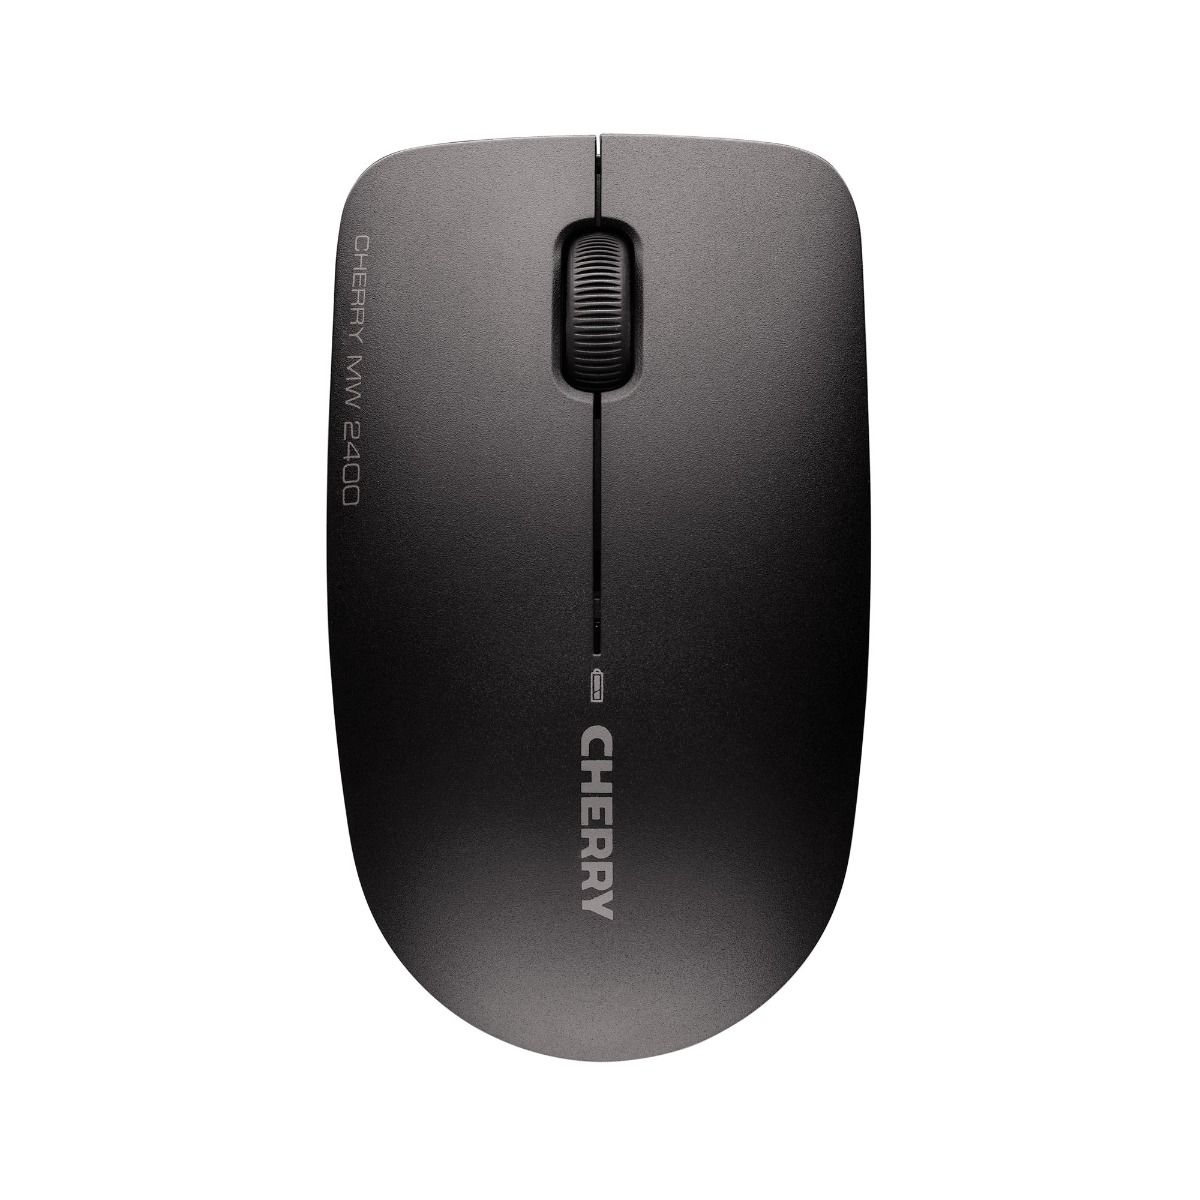 CHERRY MW 2400 mouse RF Wireless Optical 1200 DPI Ambidextrous